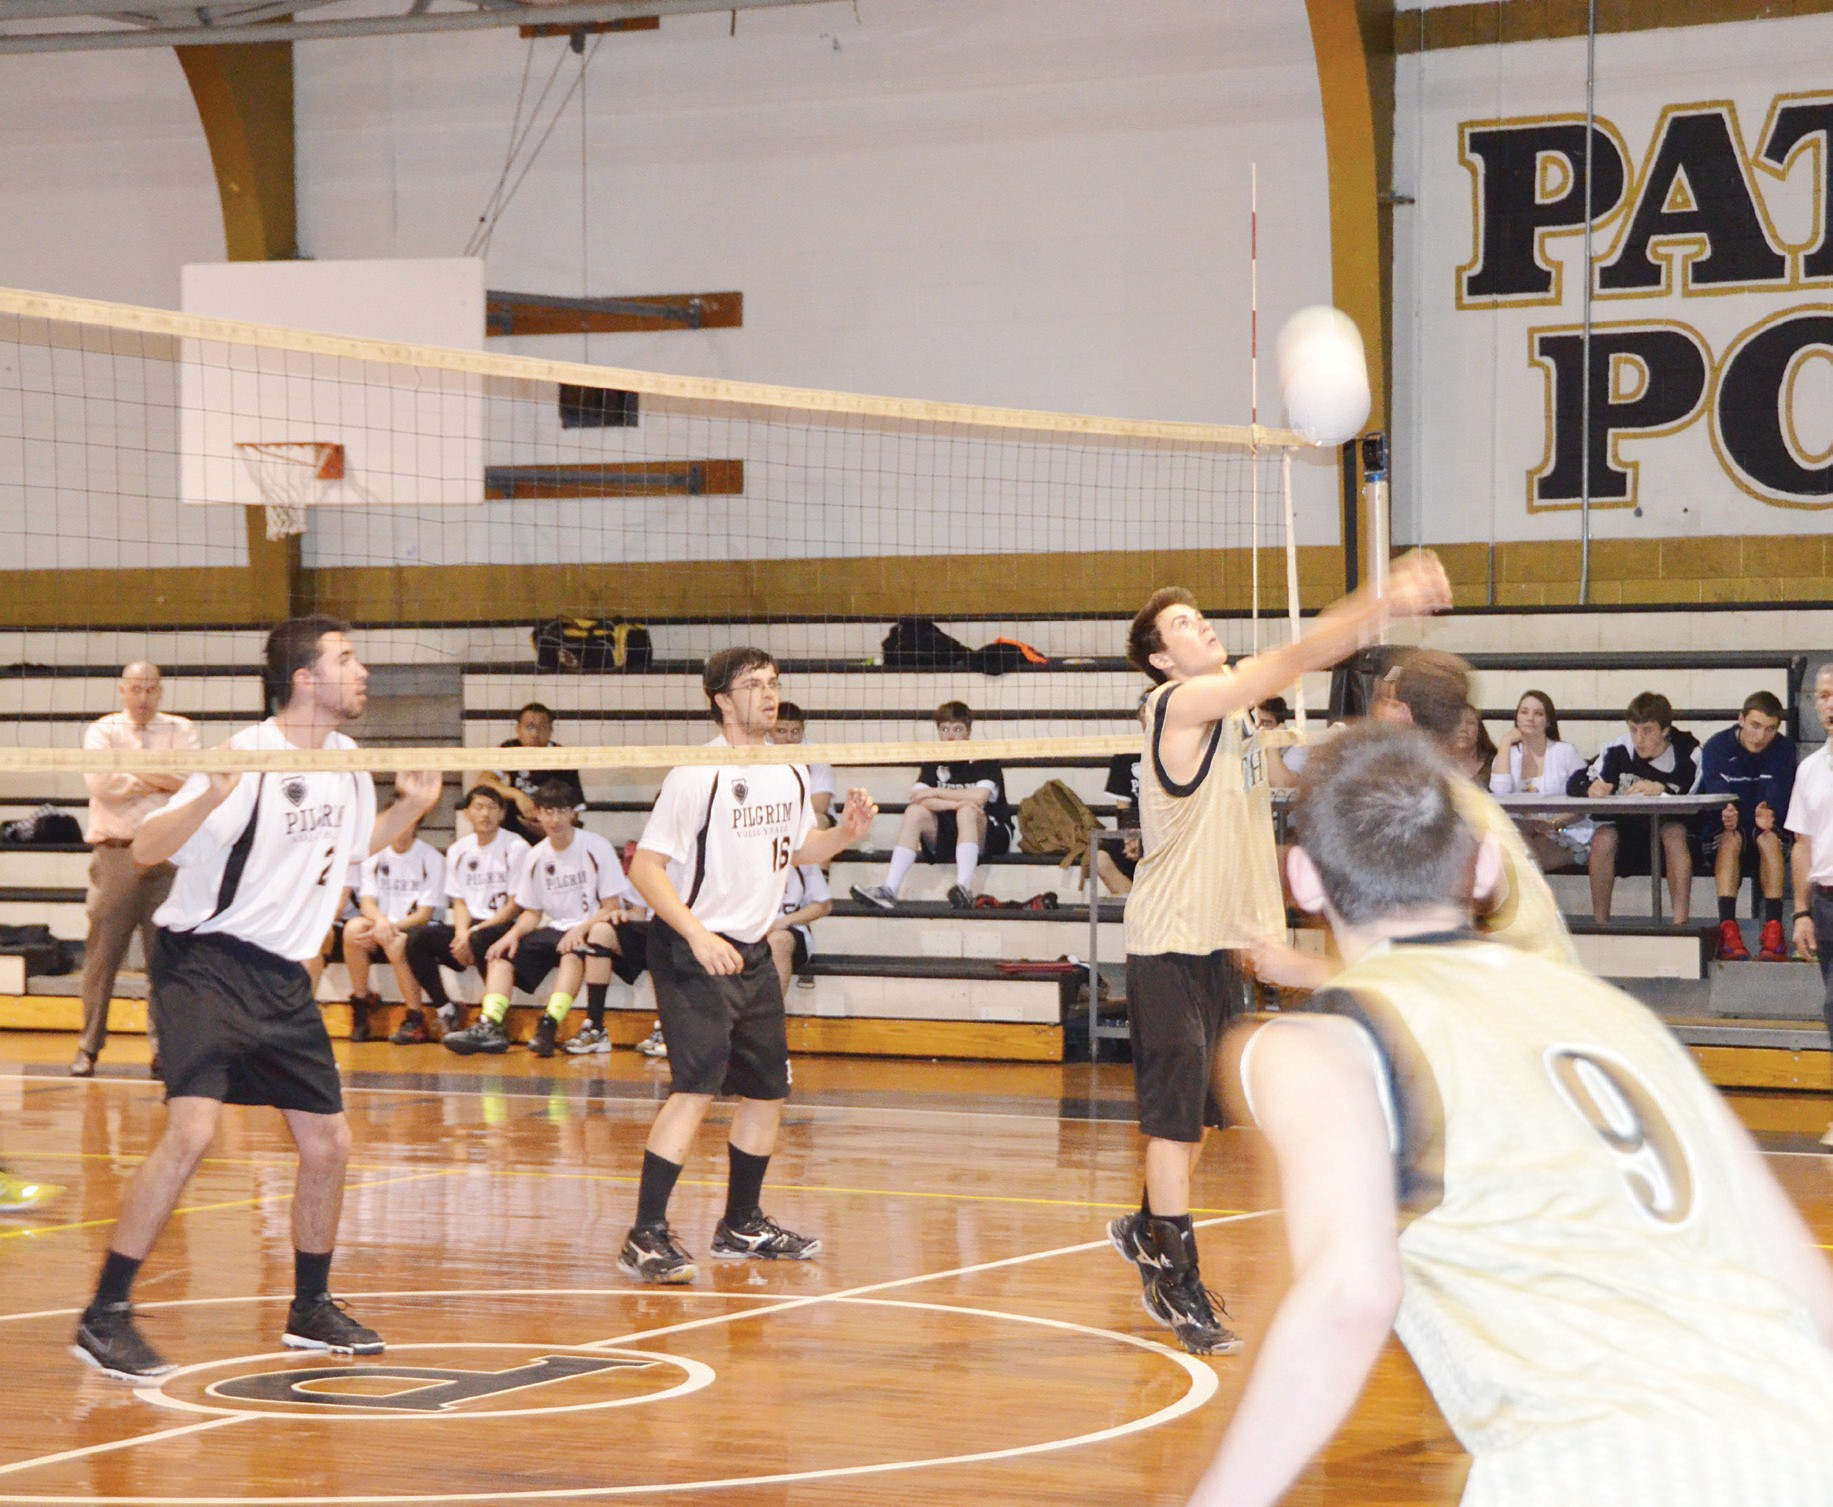 Nk Volleyball Improves To 8 3 Jamestown Press